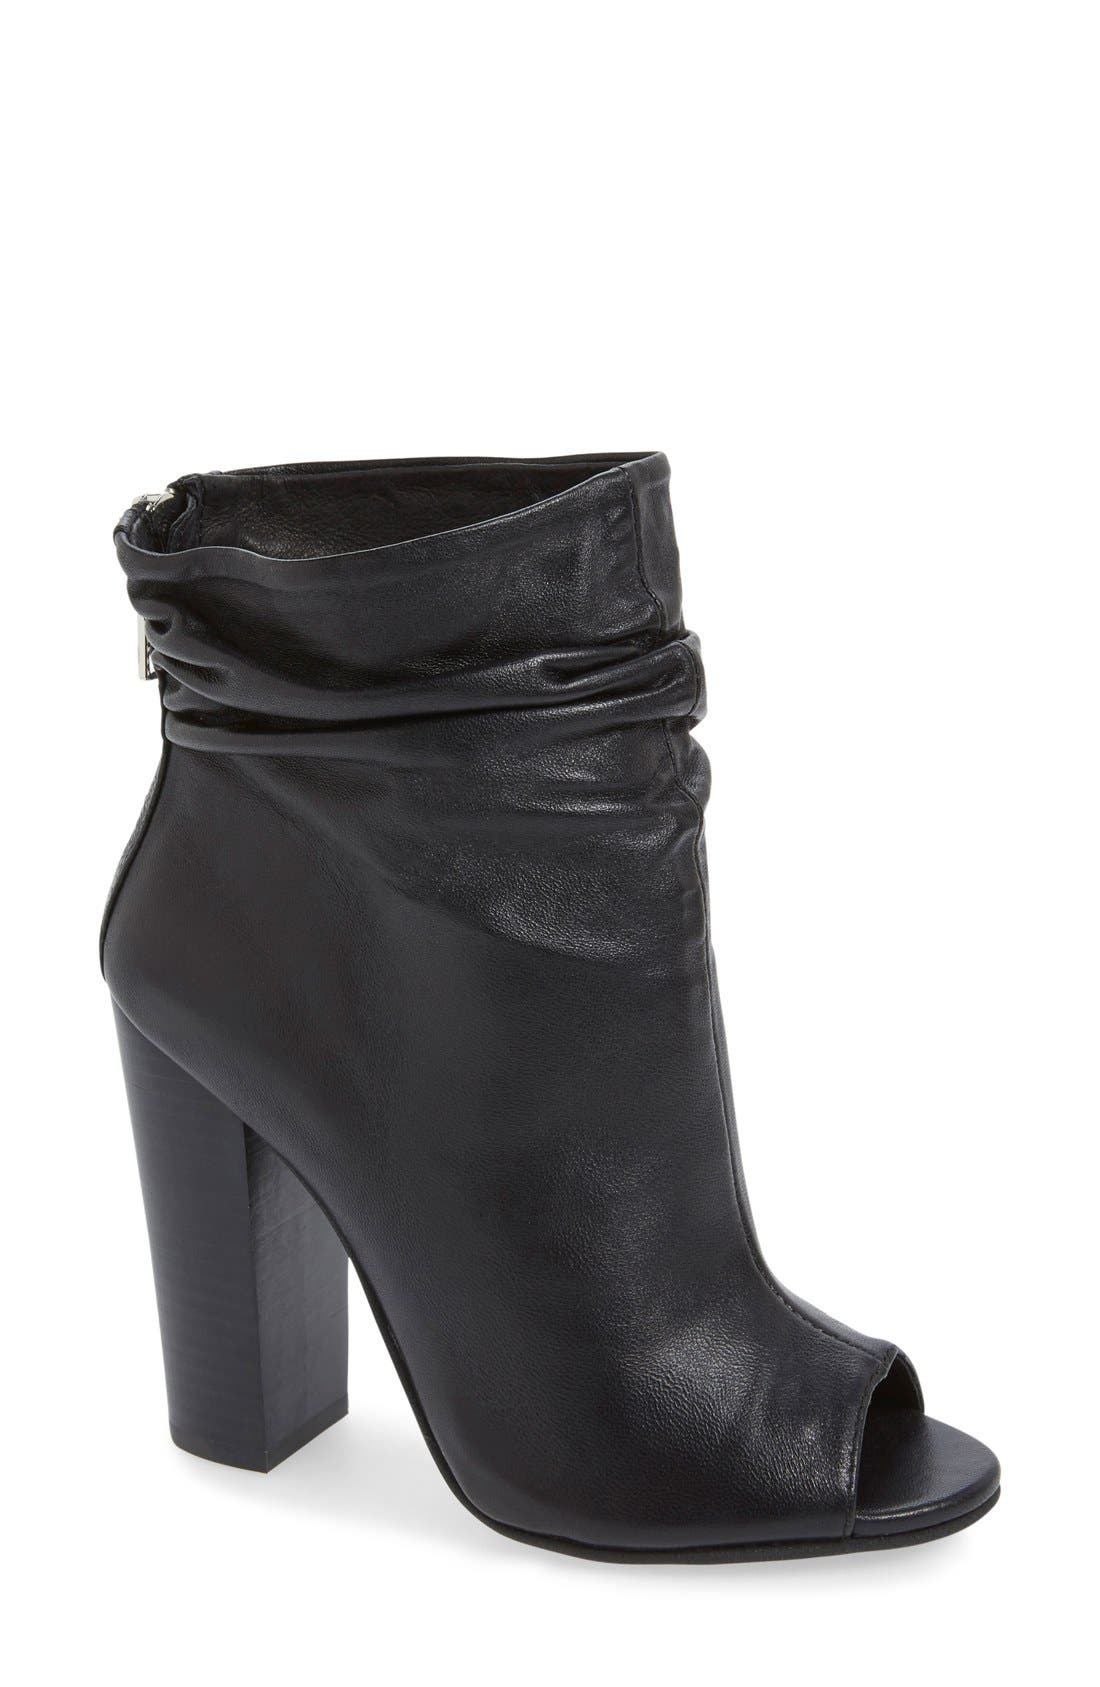 Alternate Image 1 Selected - Kristin Cavallari 'Liam' Peep Toe Bootie (Women)